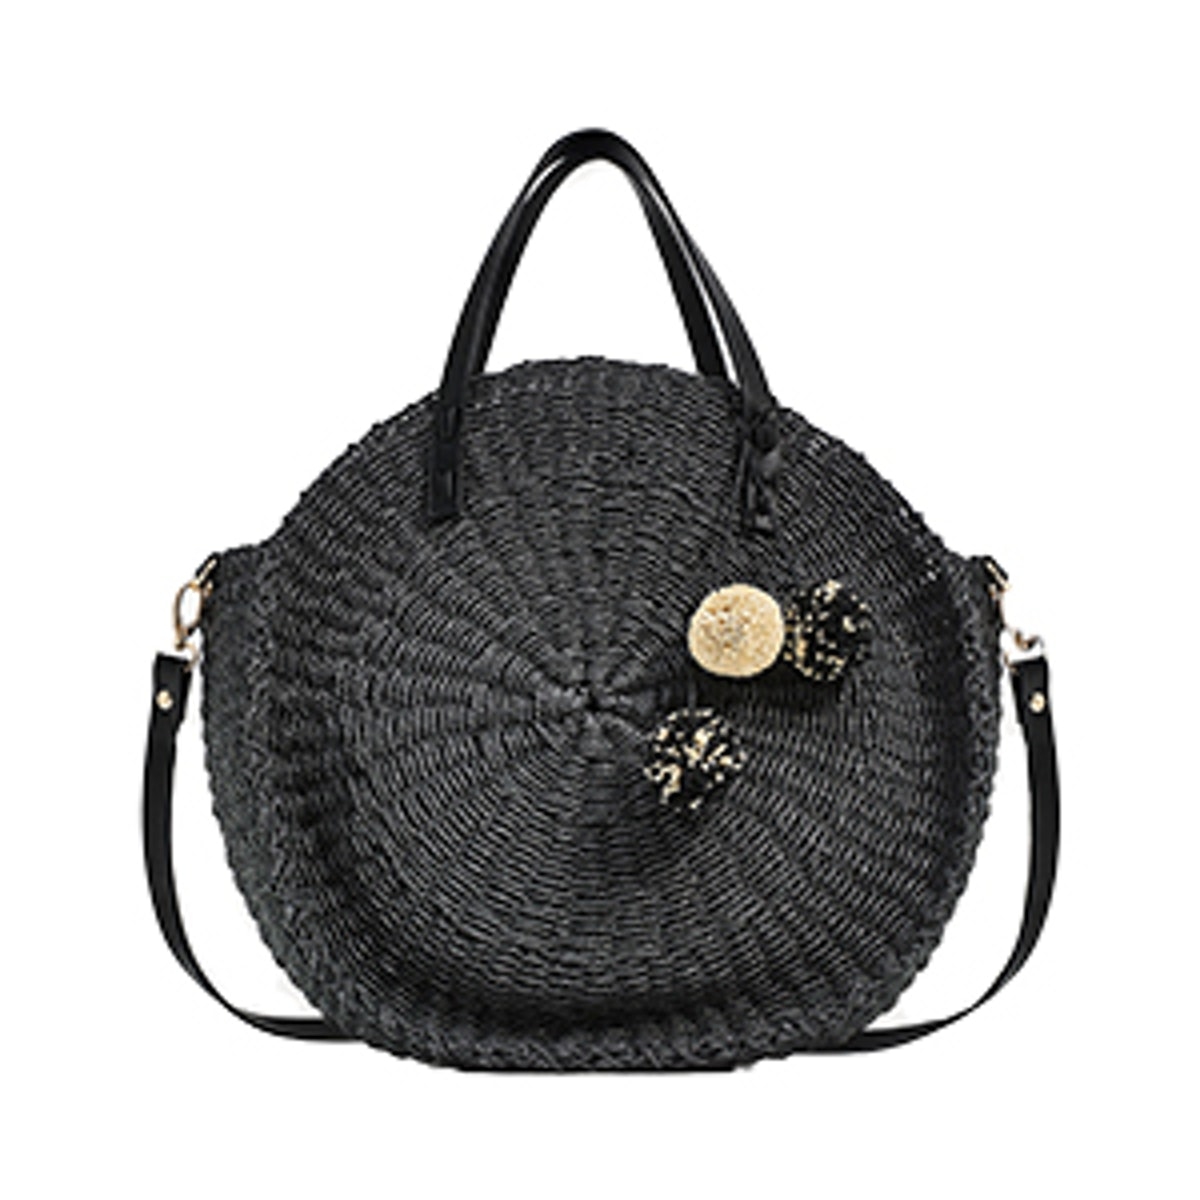 Braided Tote Bag With Pompoms